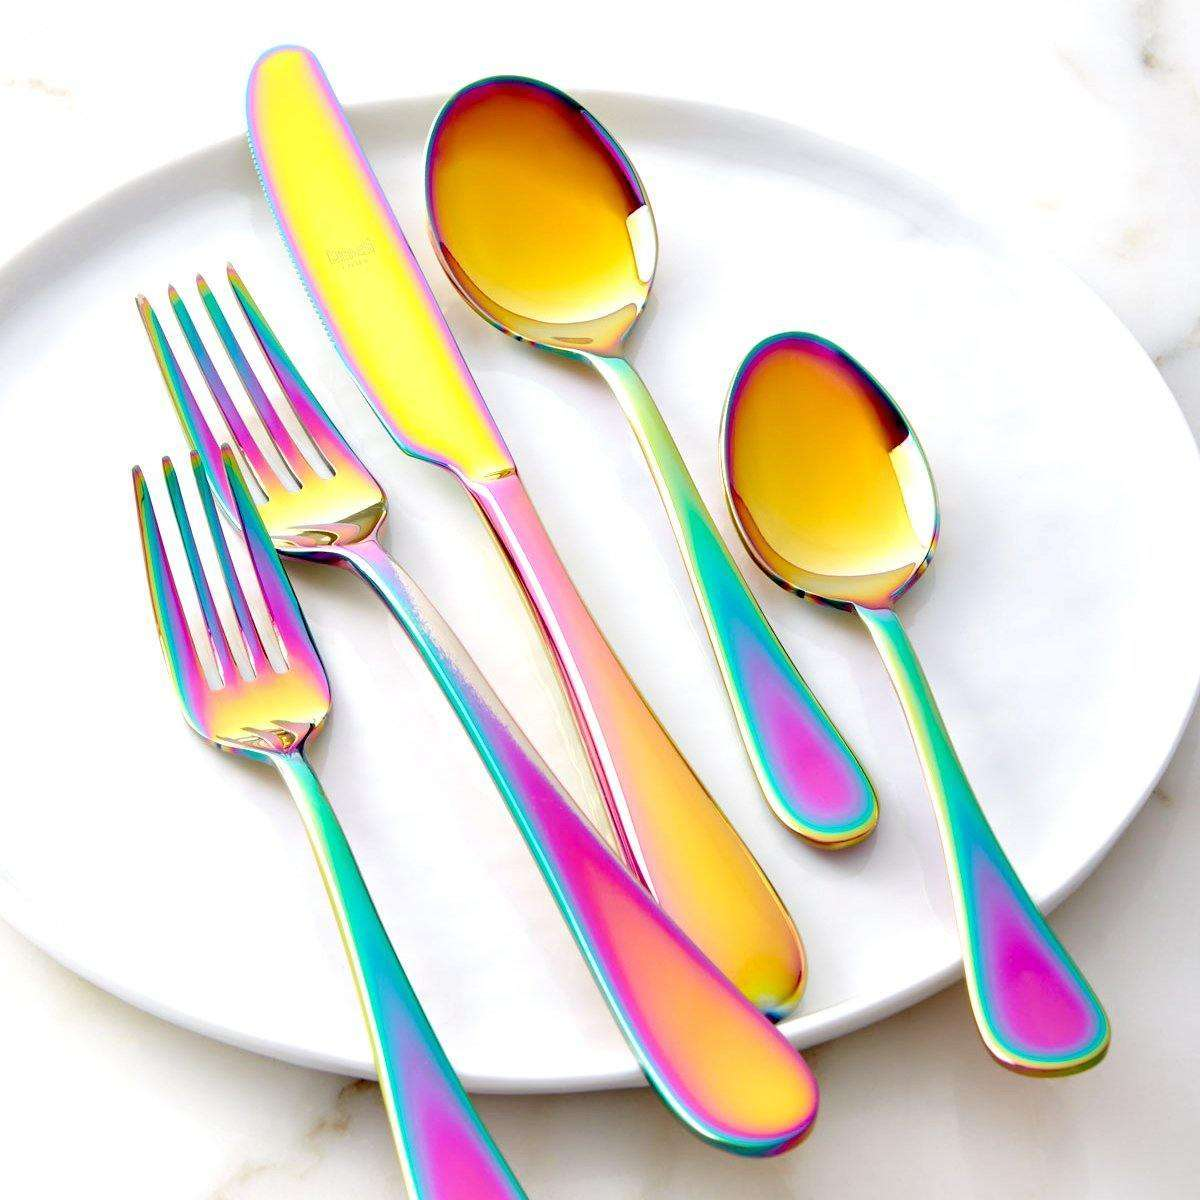 Cutlery - Unicorn Cutlery  sc 1 st  Everything In Store & Unicorn Cutlery - Everything in Store